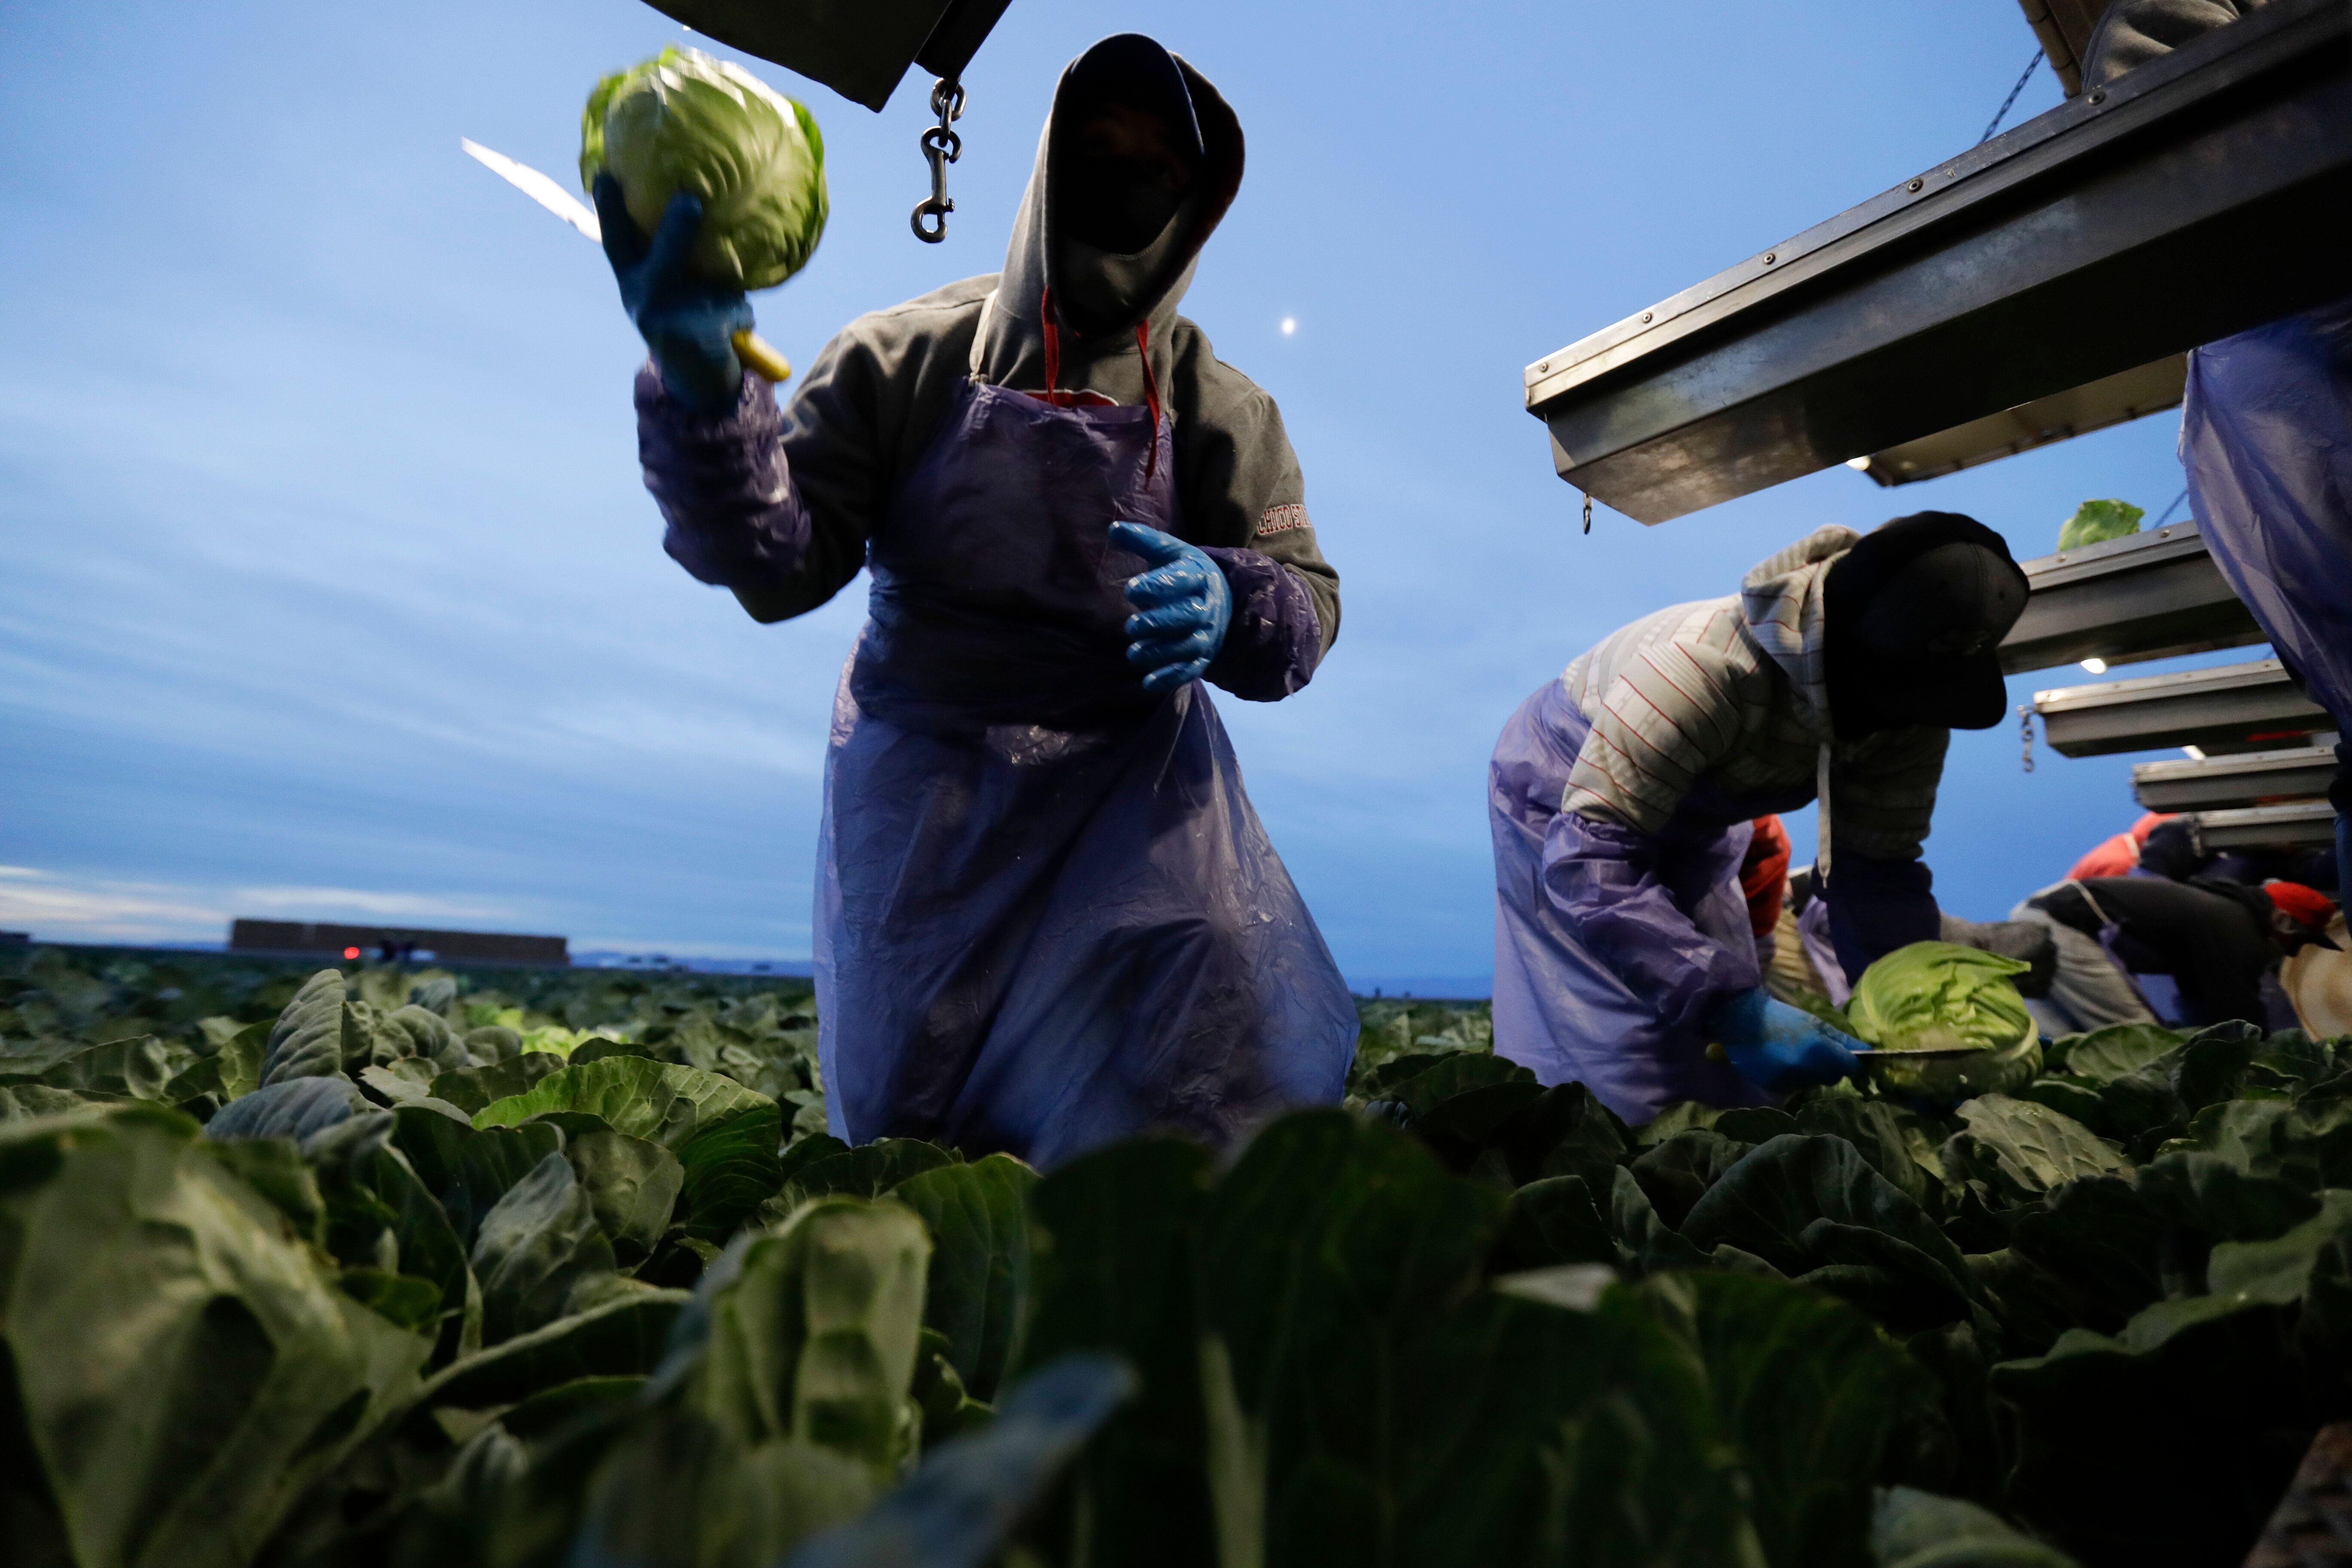 Americans Will Get Stimulus Paychecks Soon. Undocumented Workers Get Nothing.